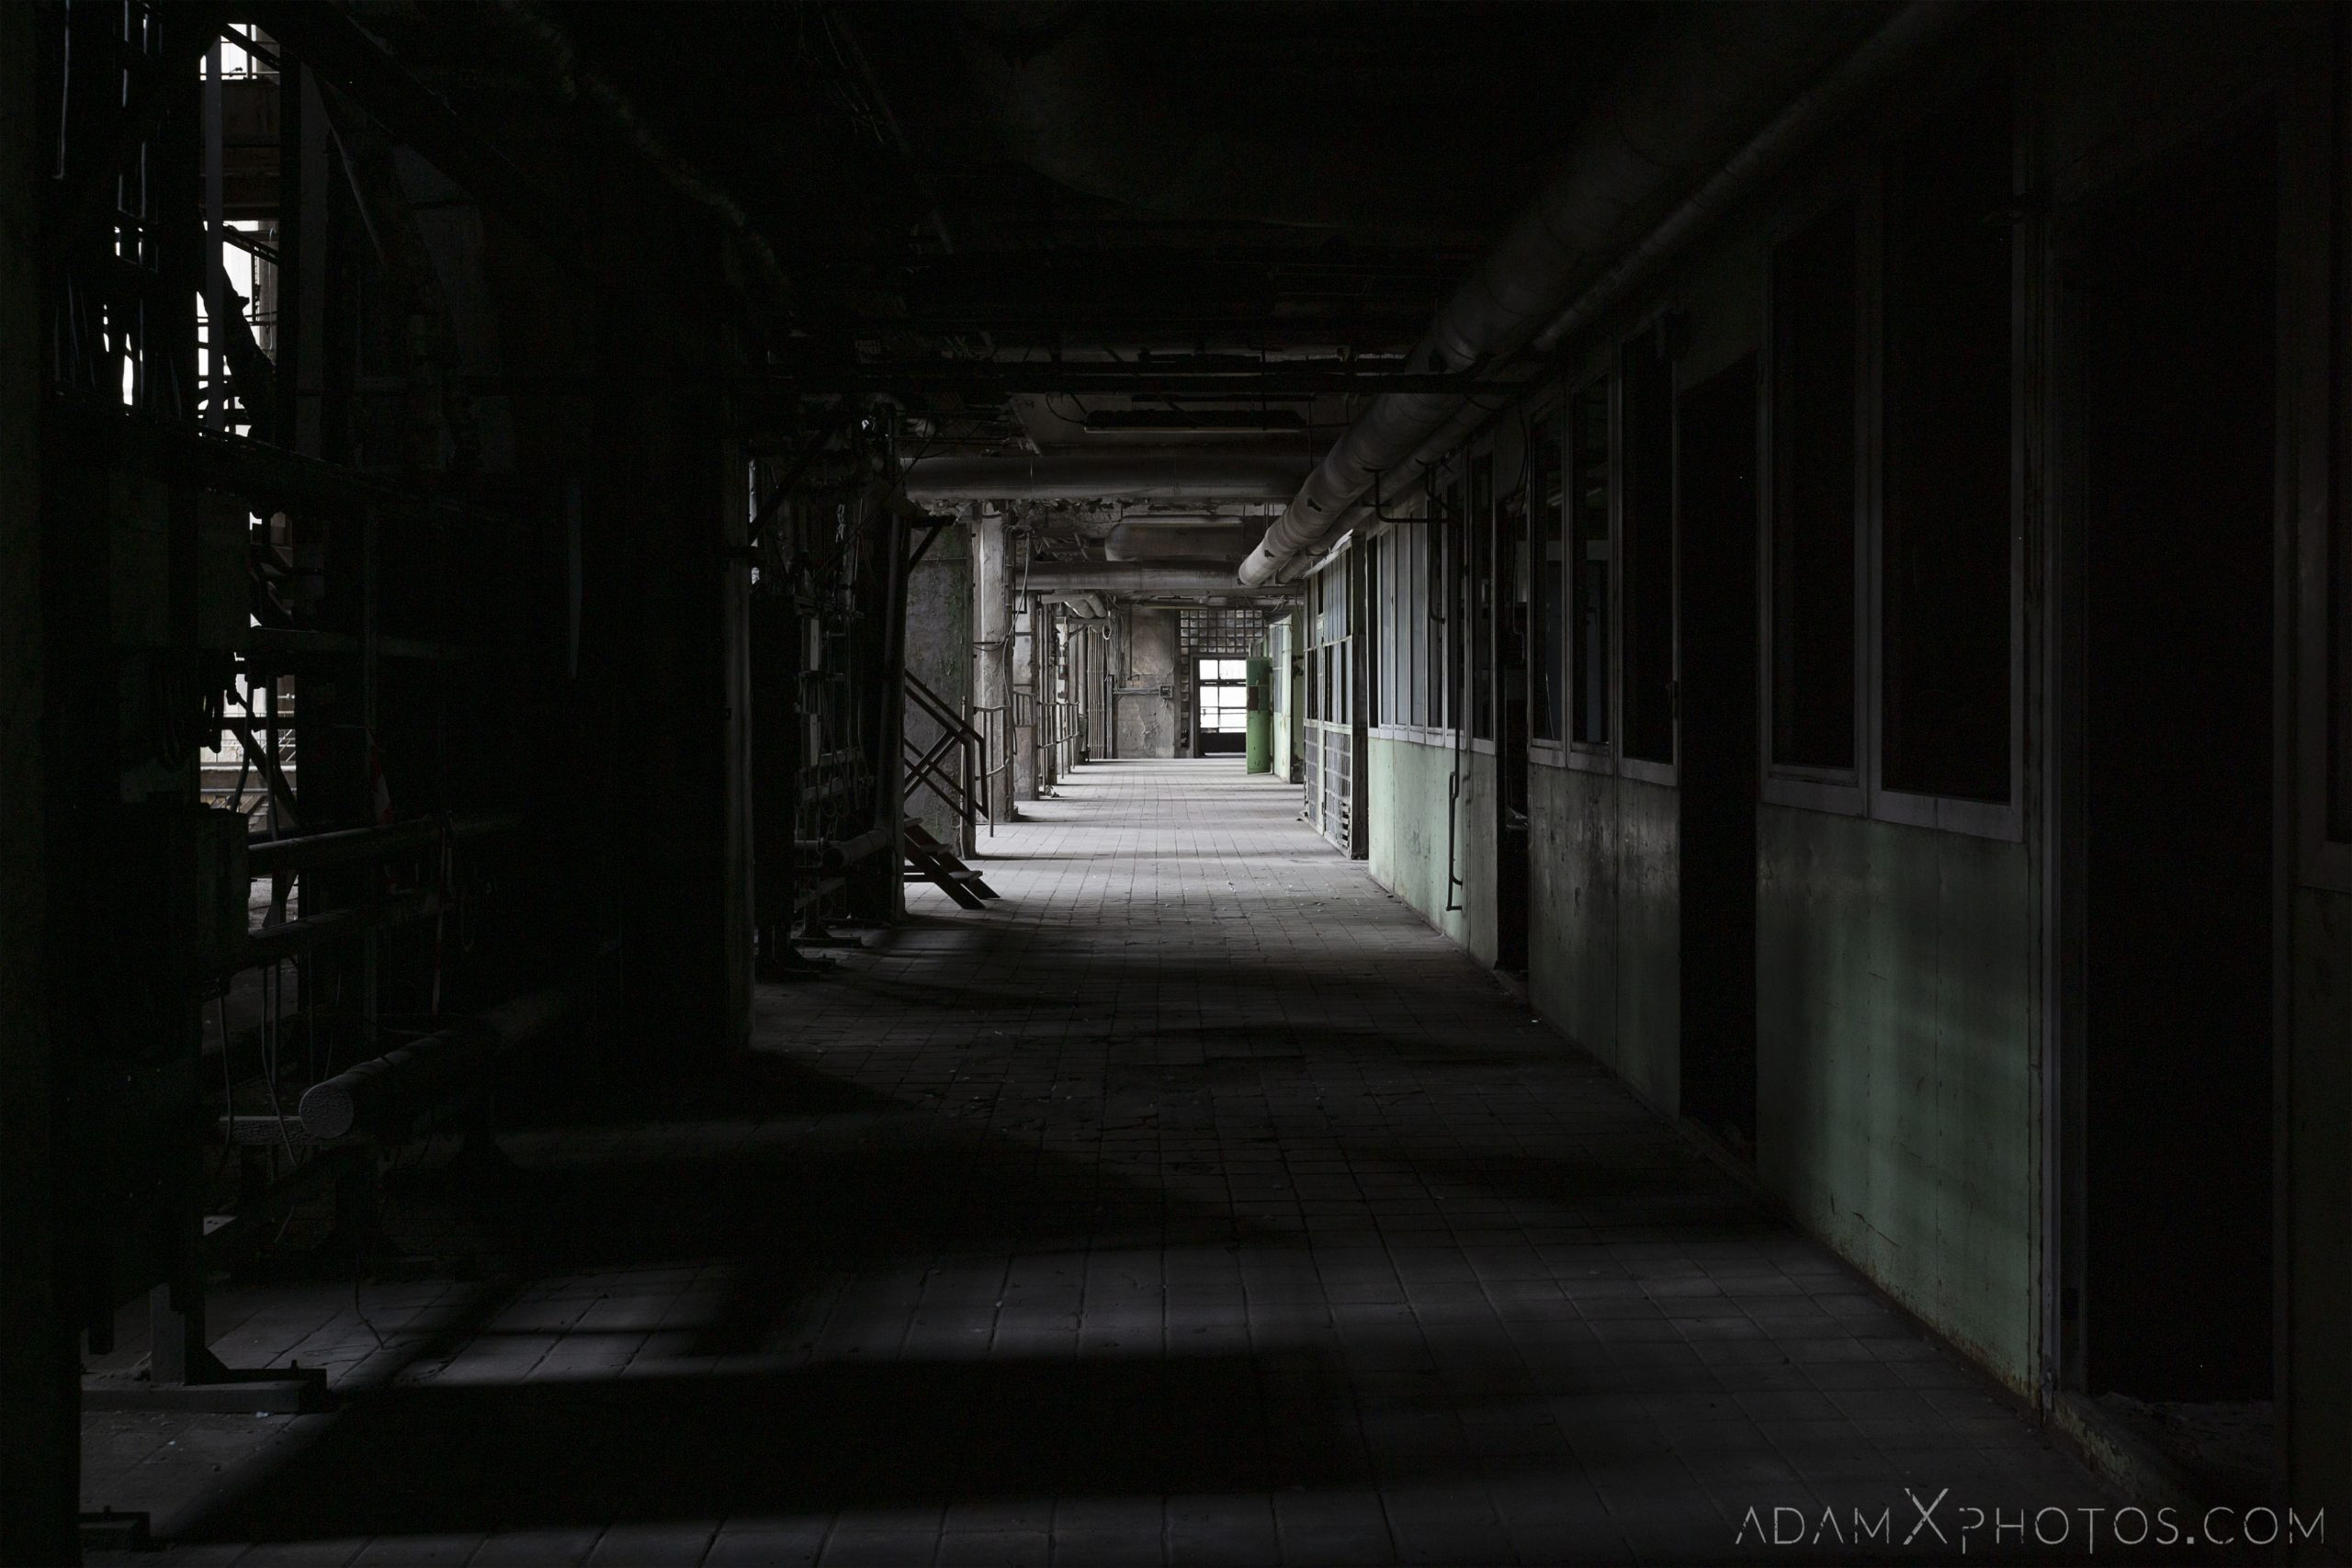 dark walkway industry industrial rusty rusting Bladerunner Blade Runner 2049 Powerplant Inota Shephard's Power Plant Hungary Adam X Urbex Urban Exploration Access 2018 Abandoned decay ruins lost forgotten derelict location creepy haunting eerie security